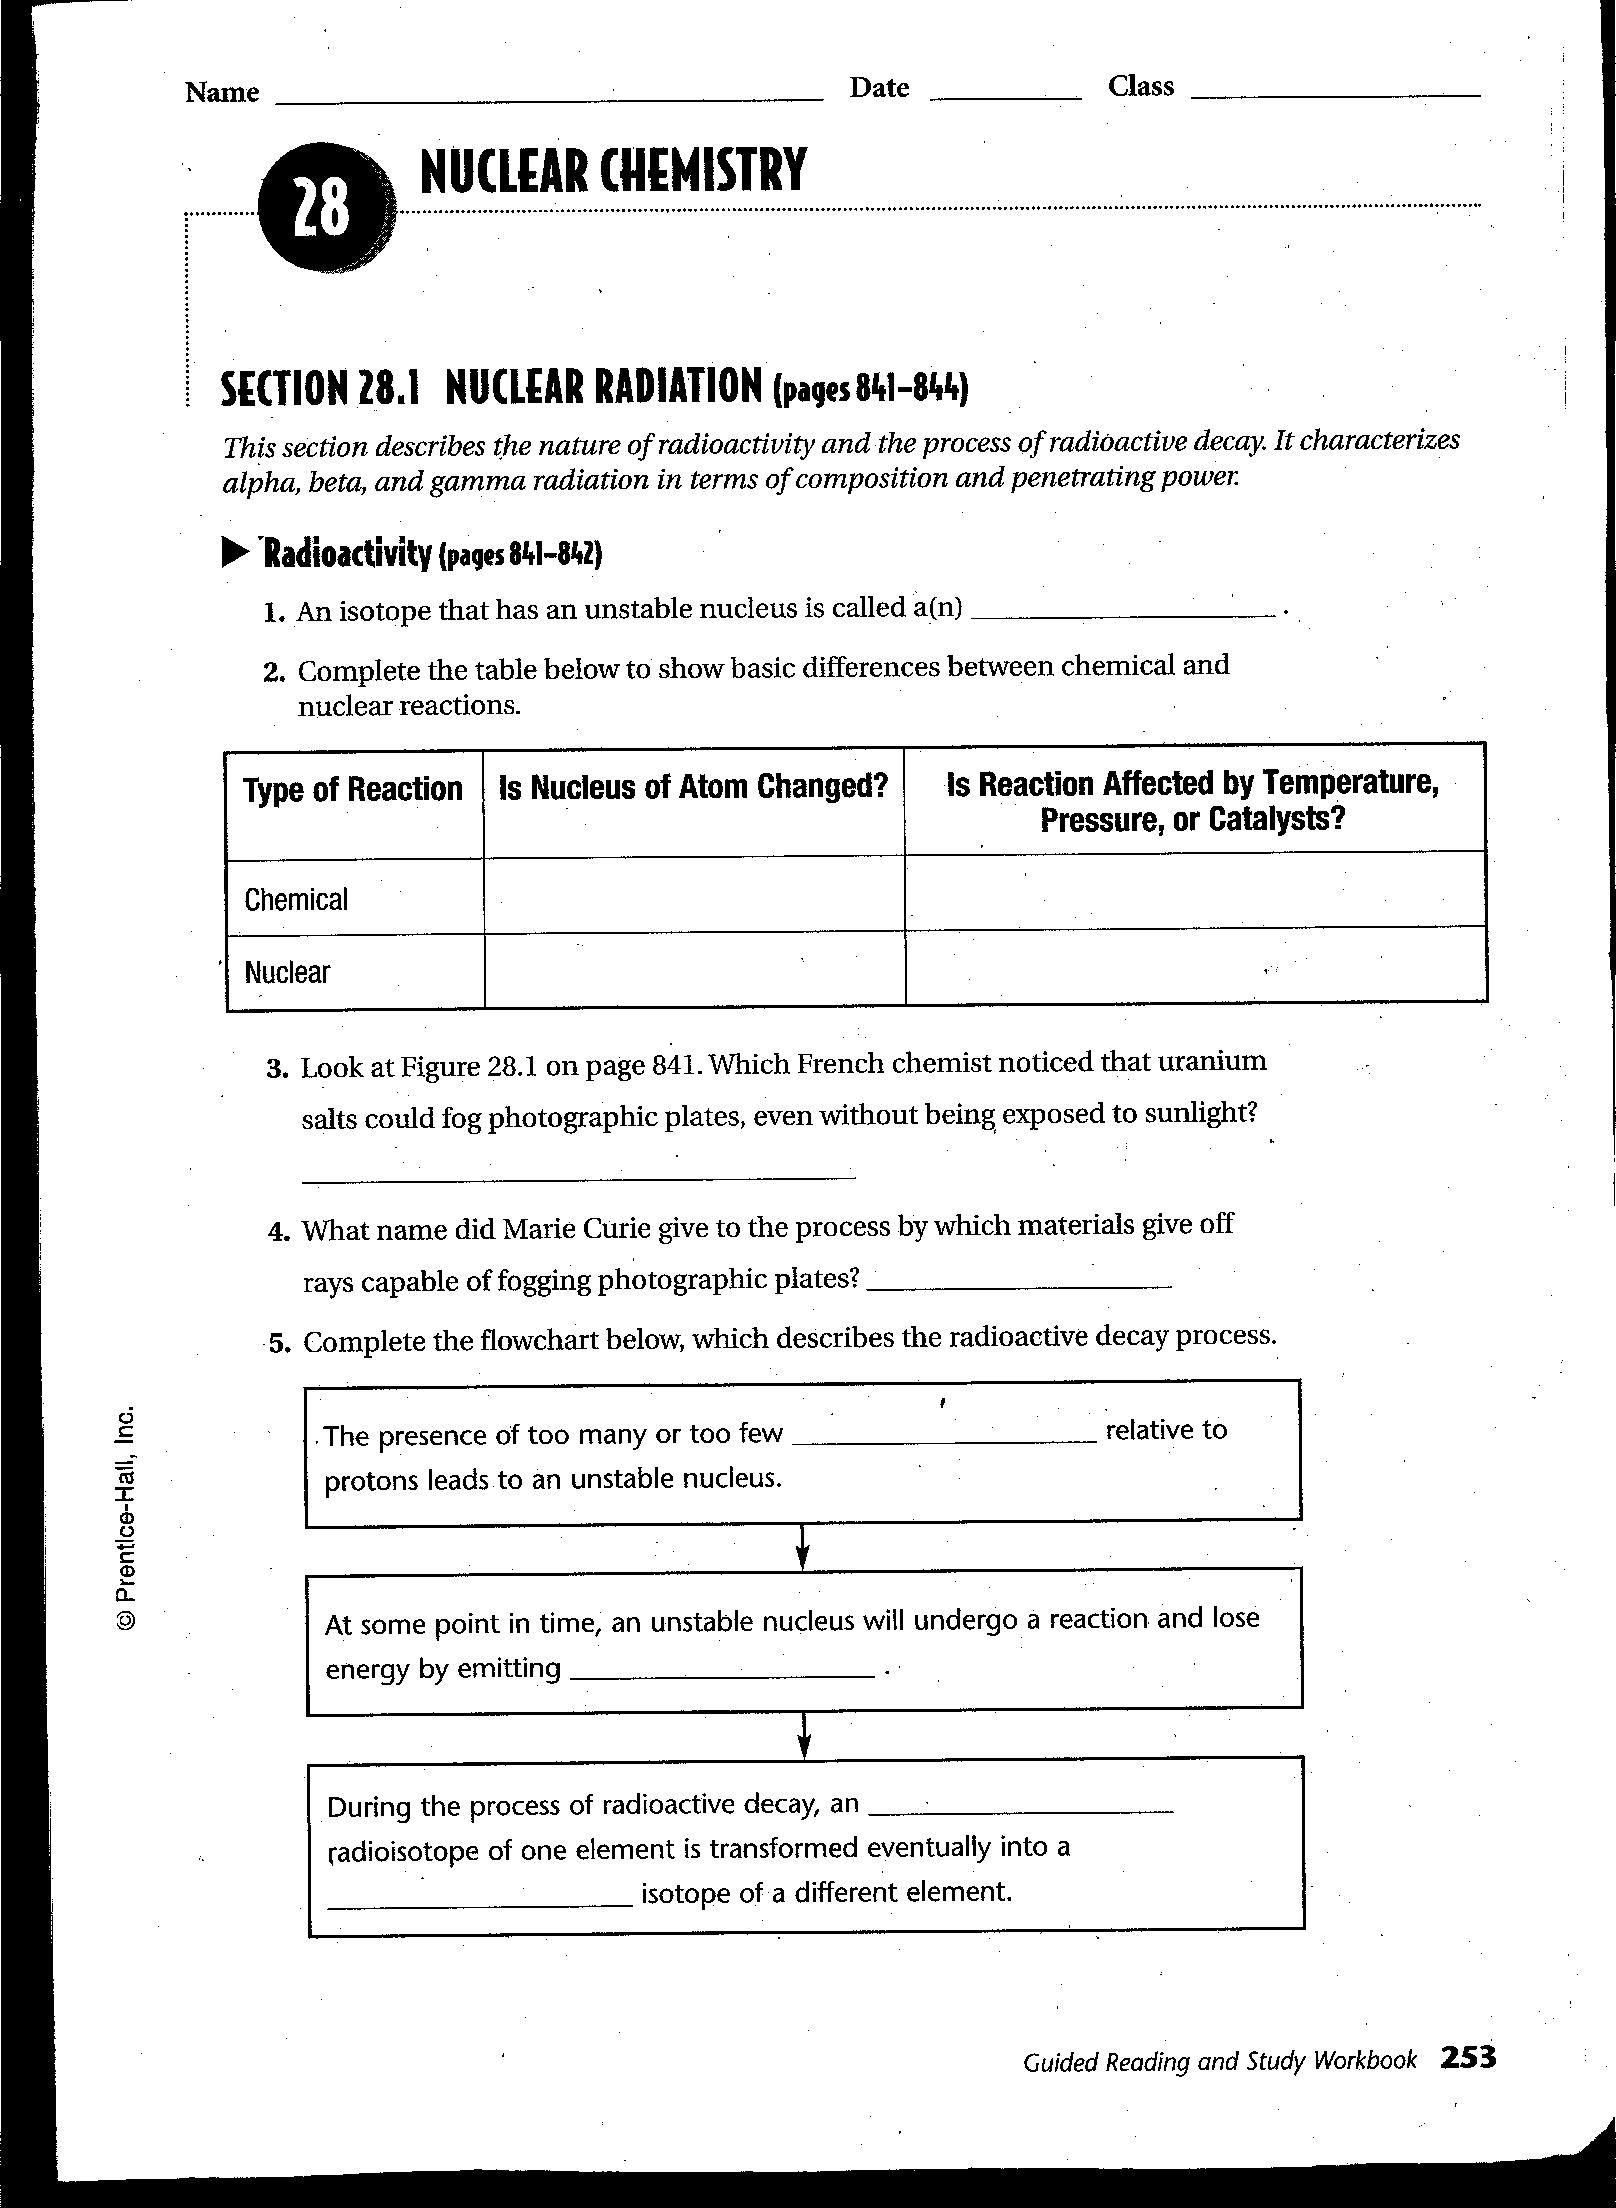 worksheets assignments captain john l chapin high school science rh rhuckabychs weebly com